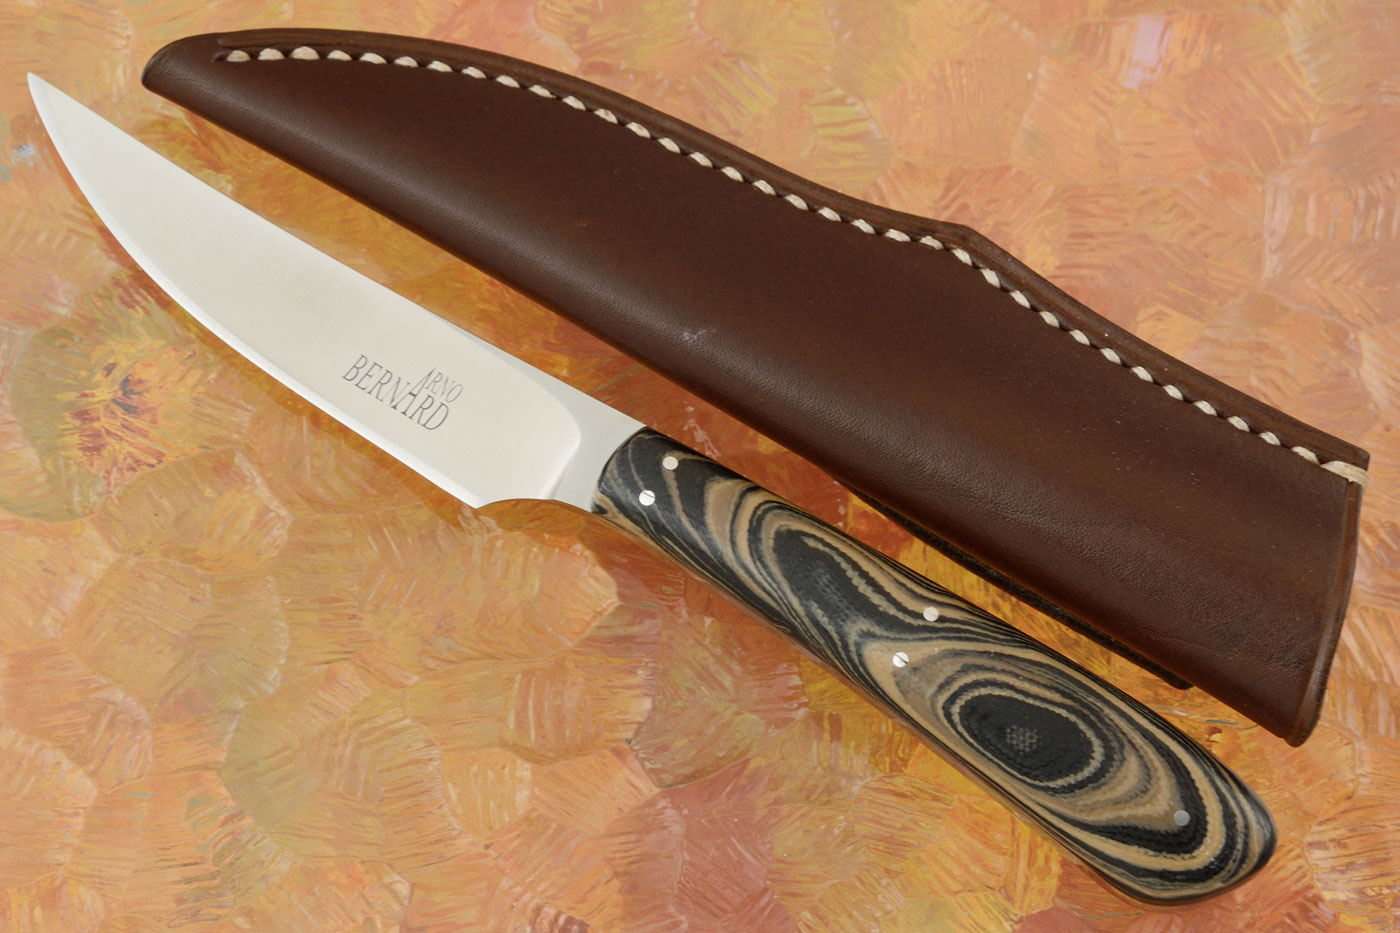 Bird & Trout with Brown/Black Camo G-10